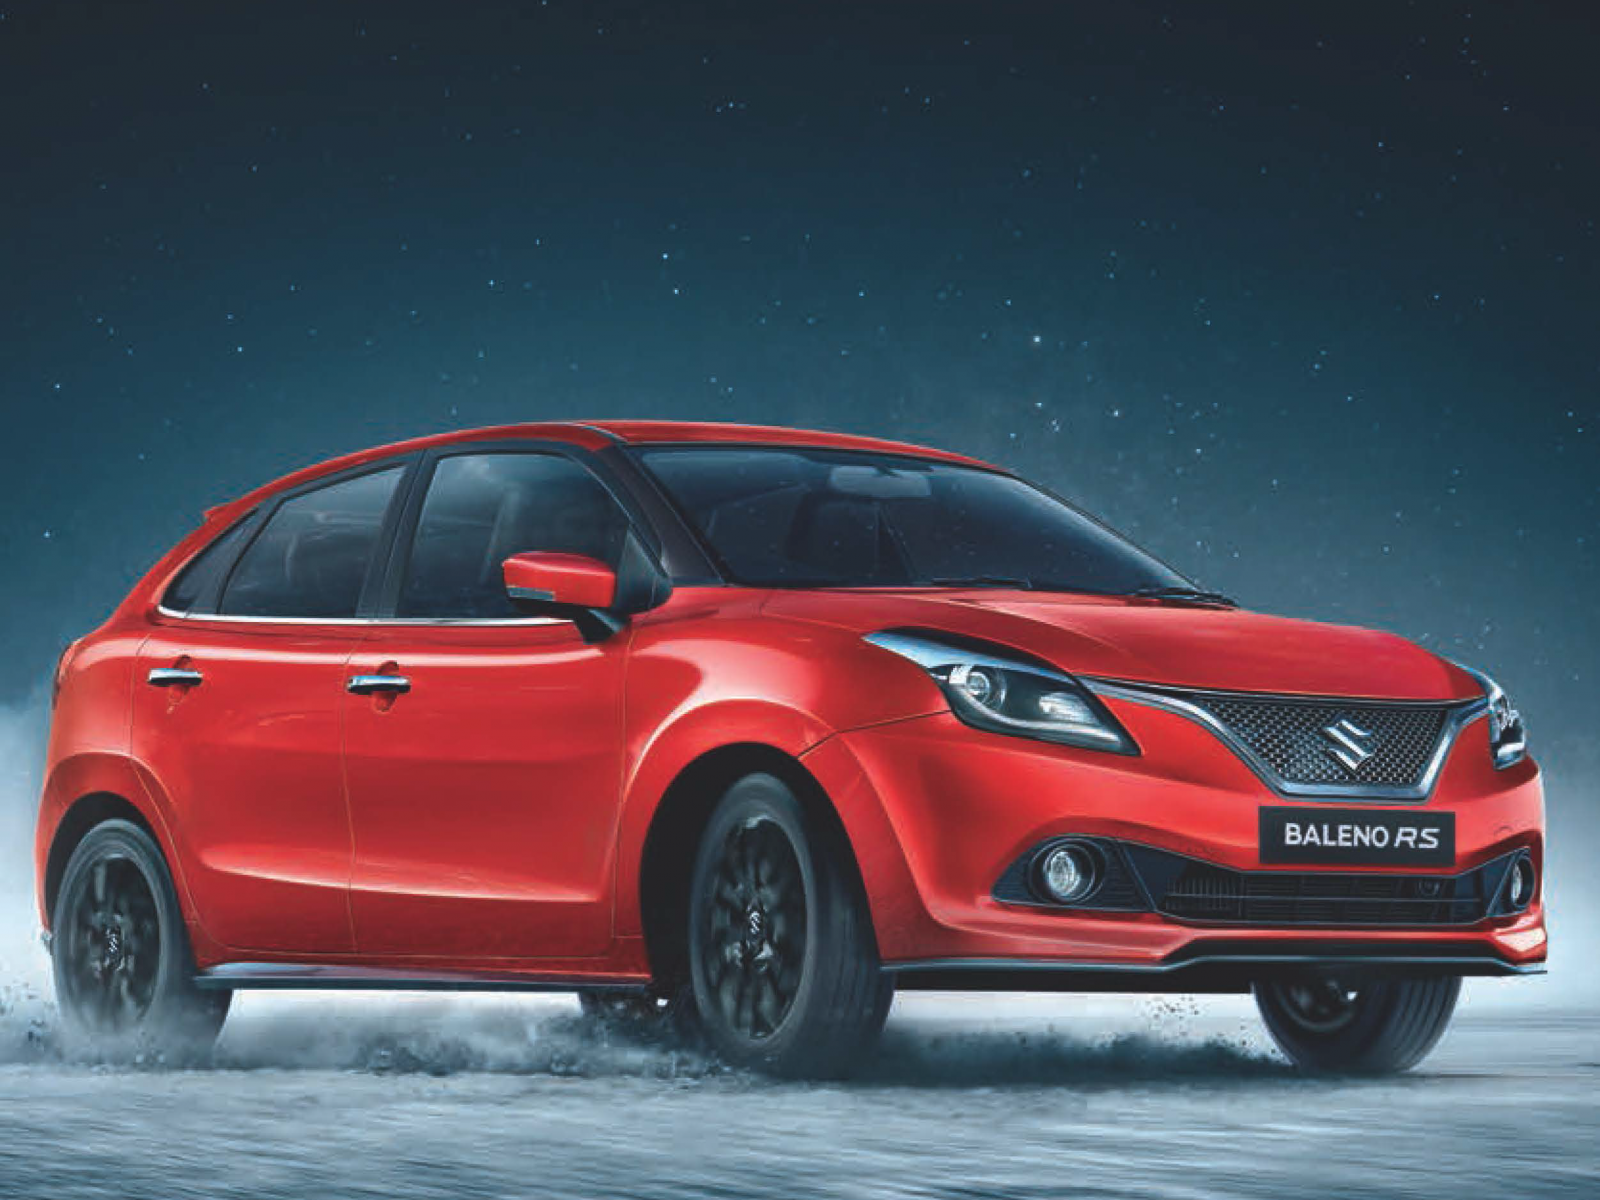 Maruti Suzuki Baleno 2015 2019 Wallpapers Free Download